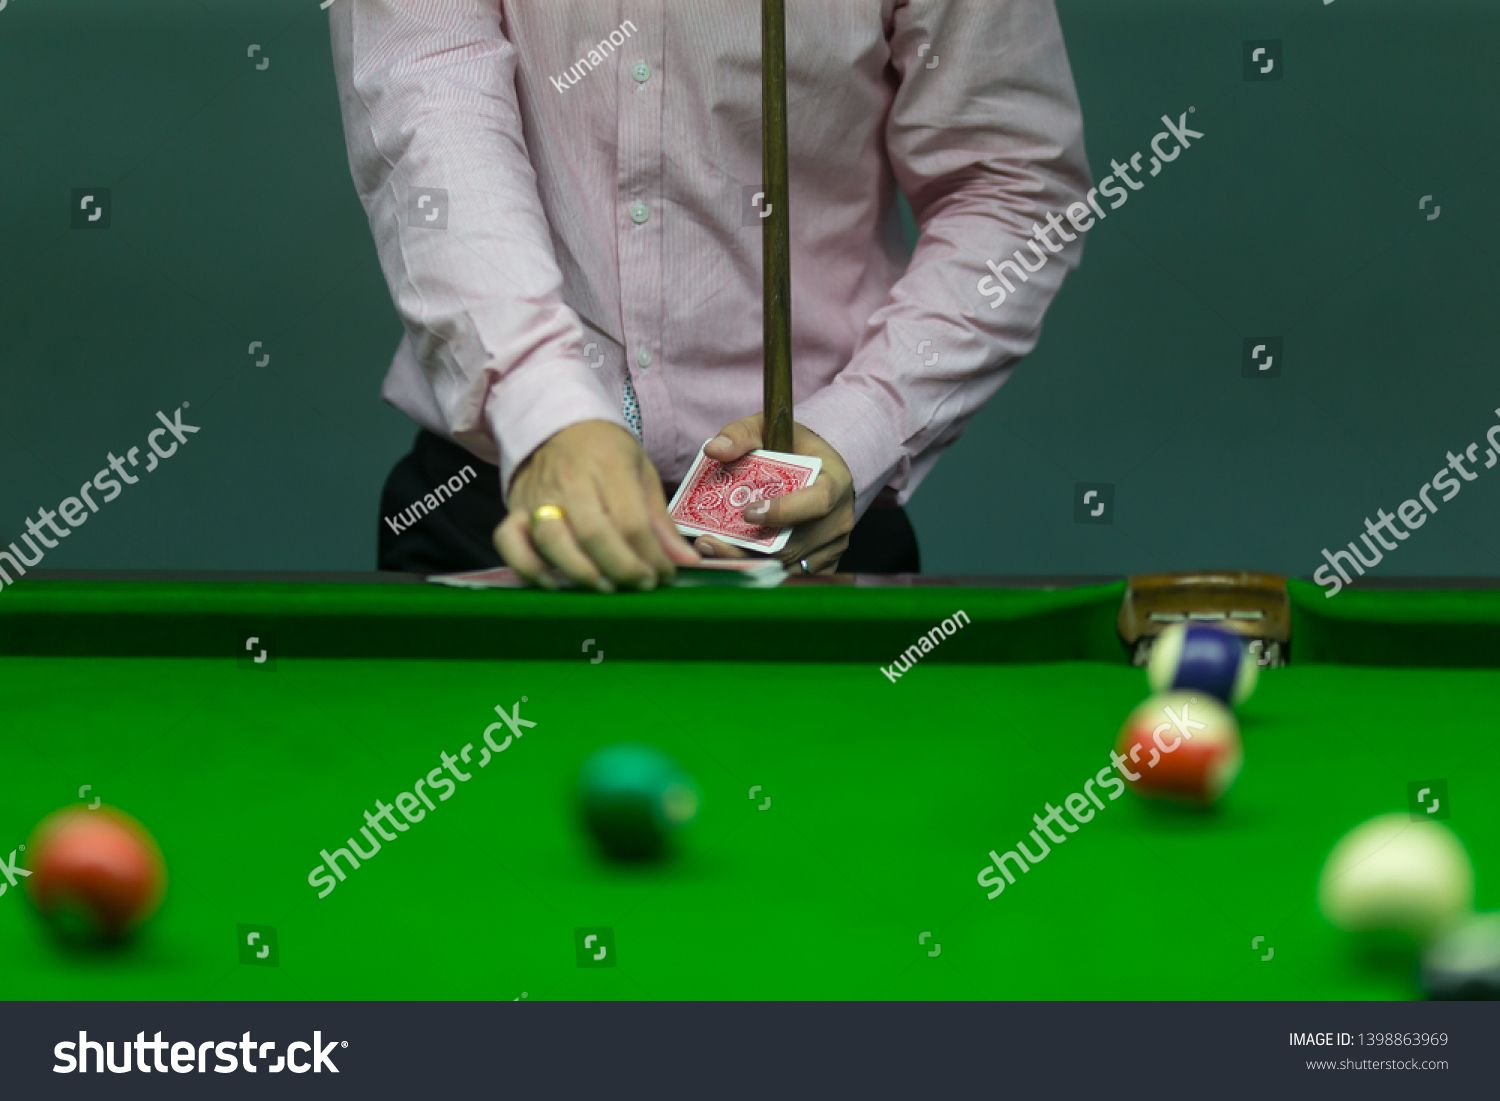 snooker player drawing card for gamble in pool sport Ad